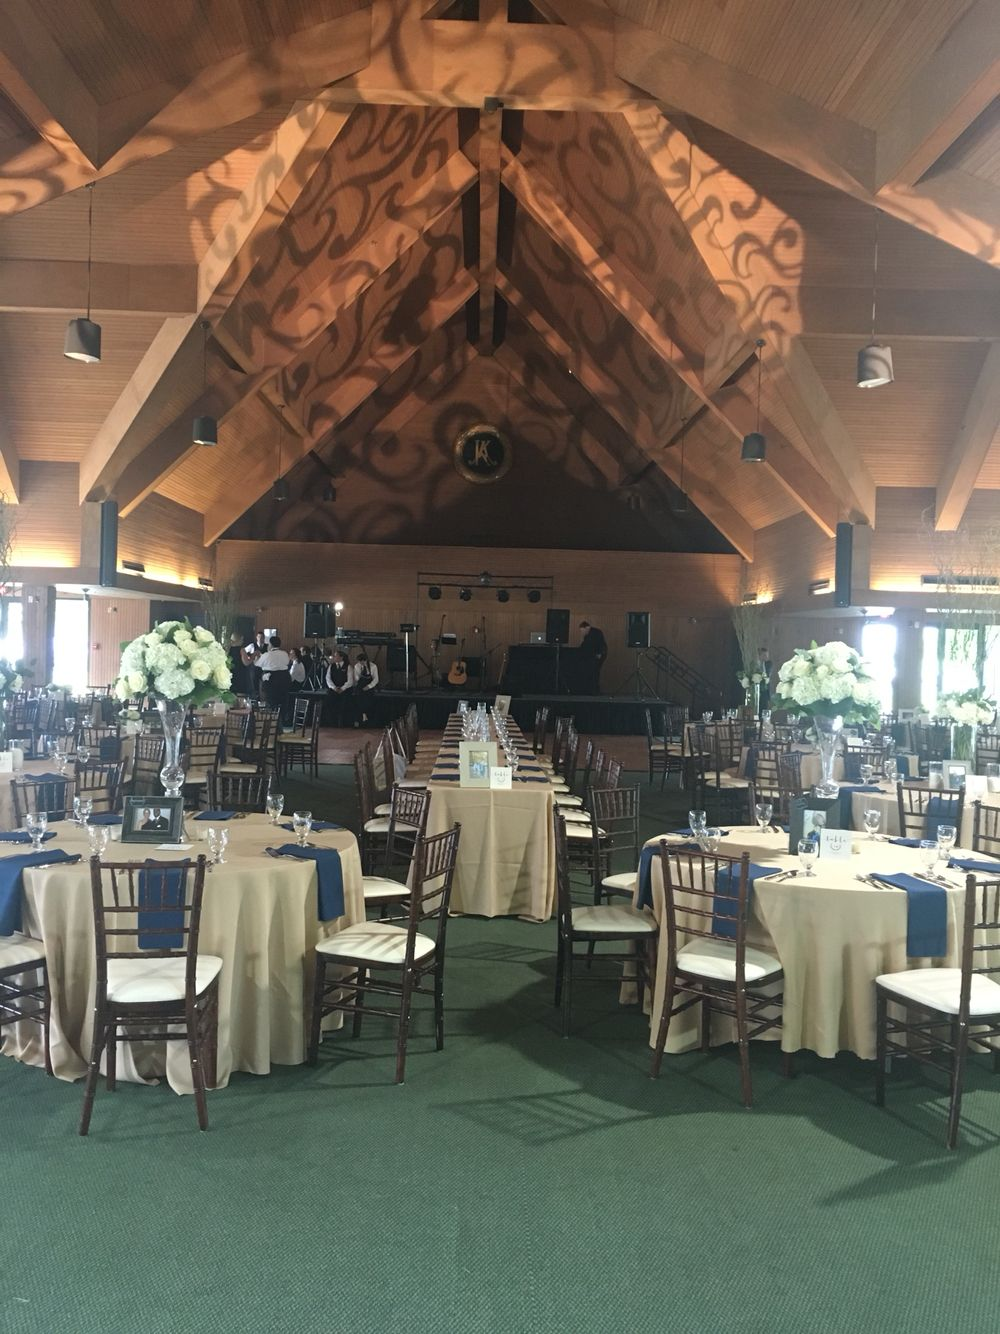 Ceiling Lighting For Rustic Wedding At Keeneland Entertainment